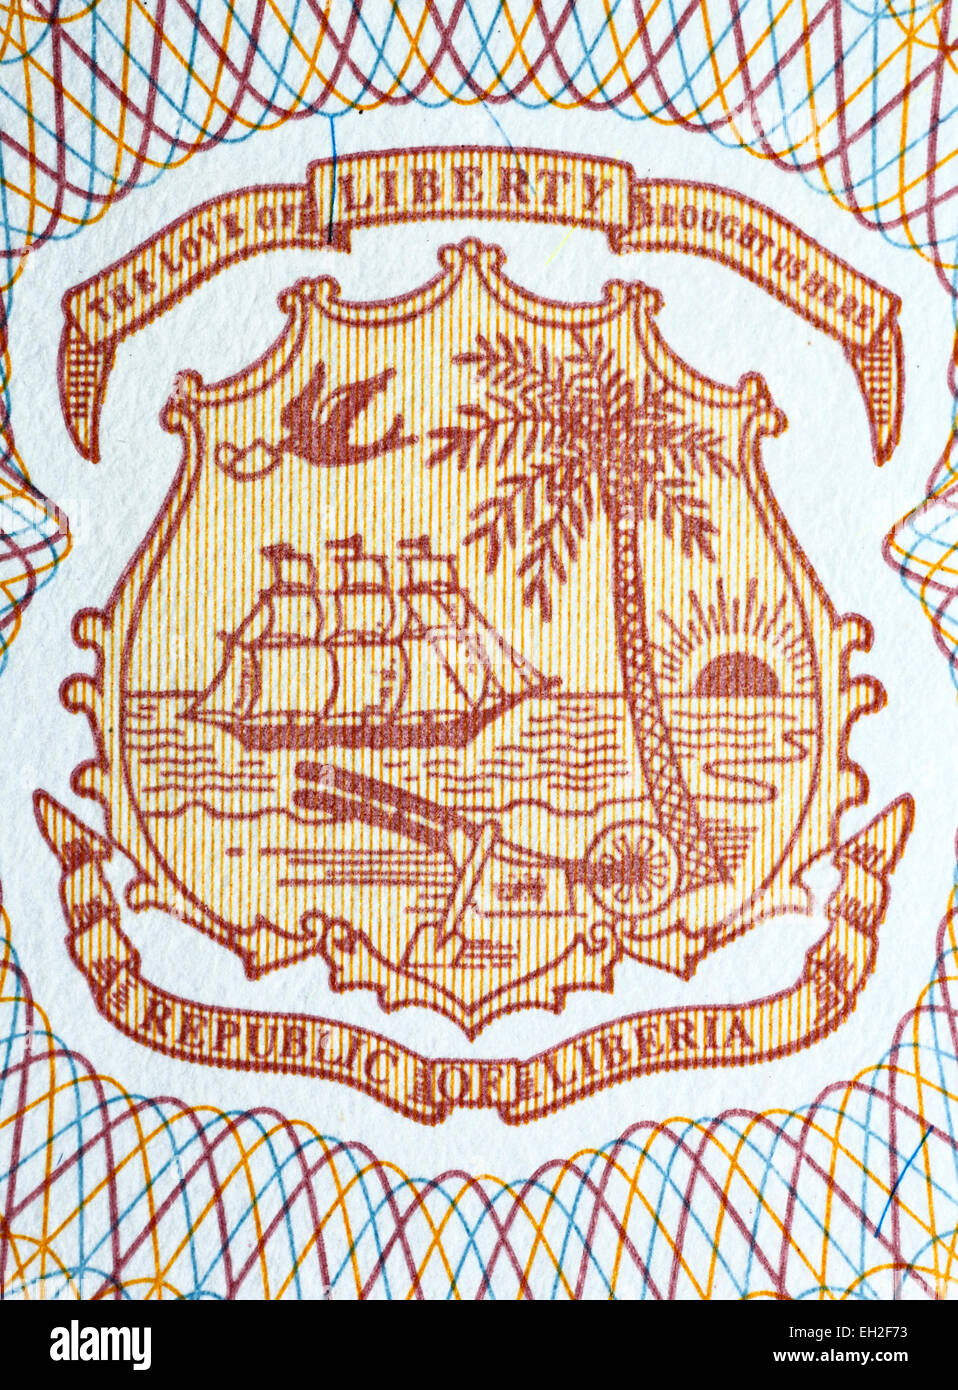 Coat of arms of Liberia from 5 dollars banknote, Liberia, 2009 - Stock Image